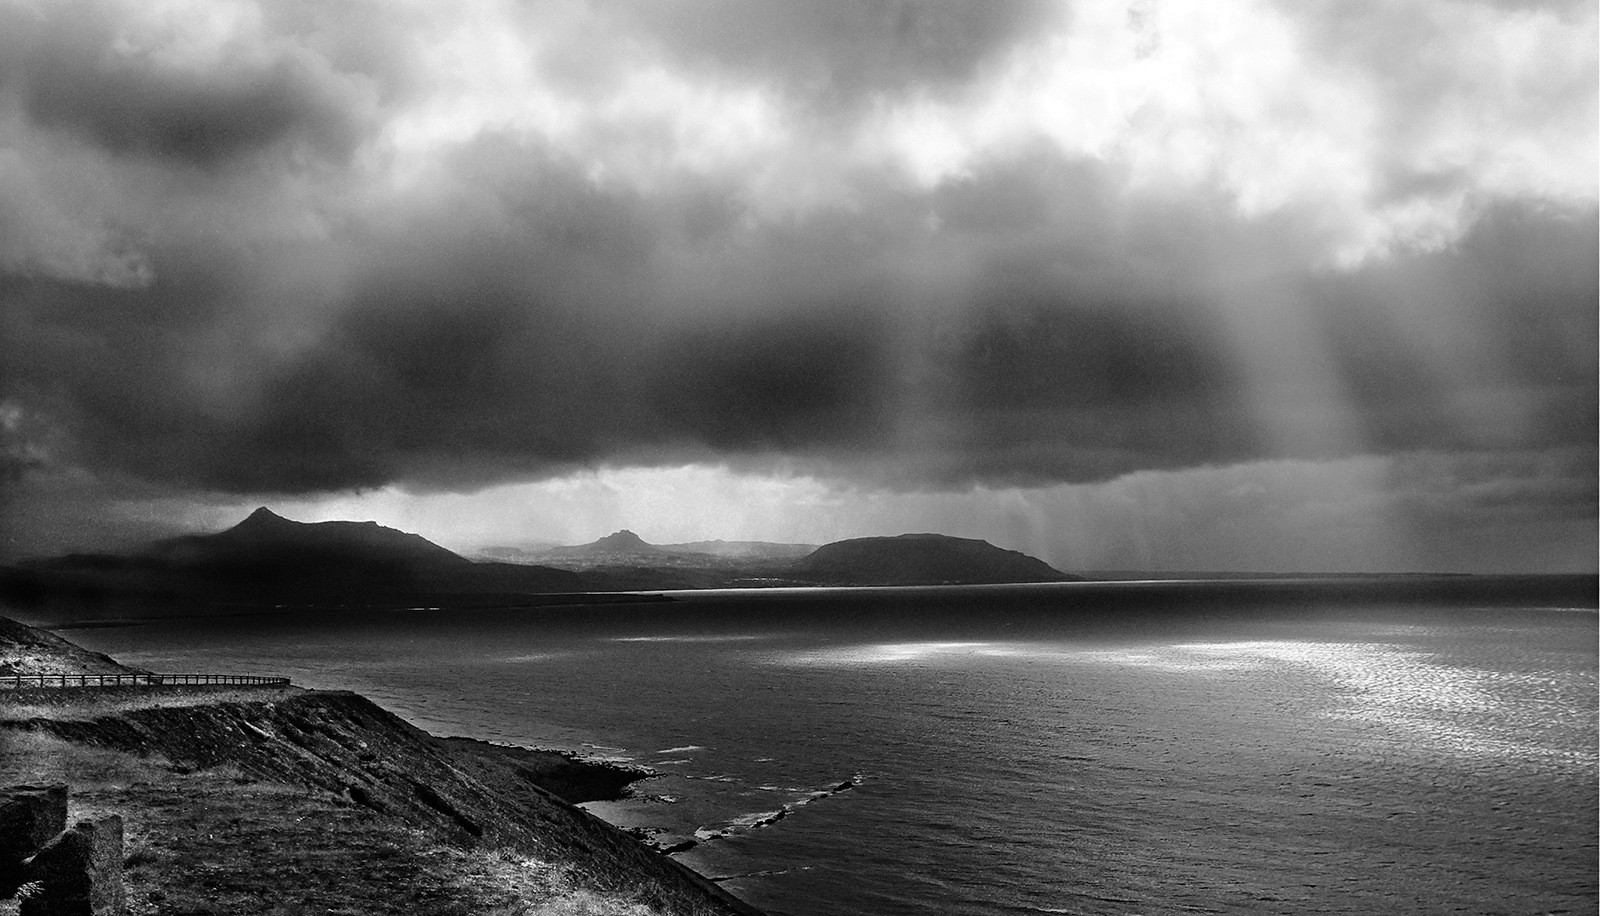 MONO - Headlands In Rain, Iceland by Danny McCaughan (10 marks)